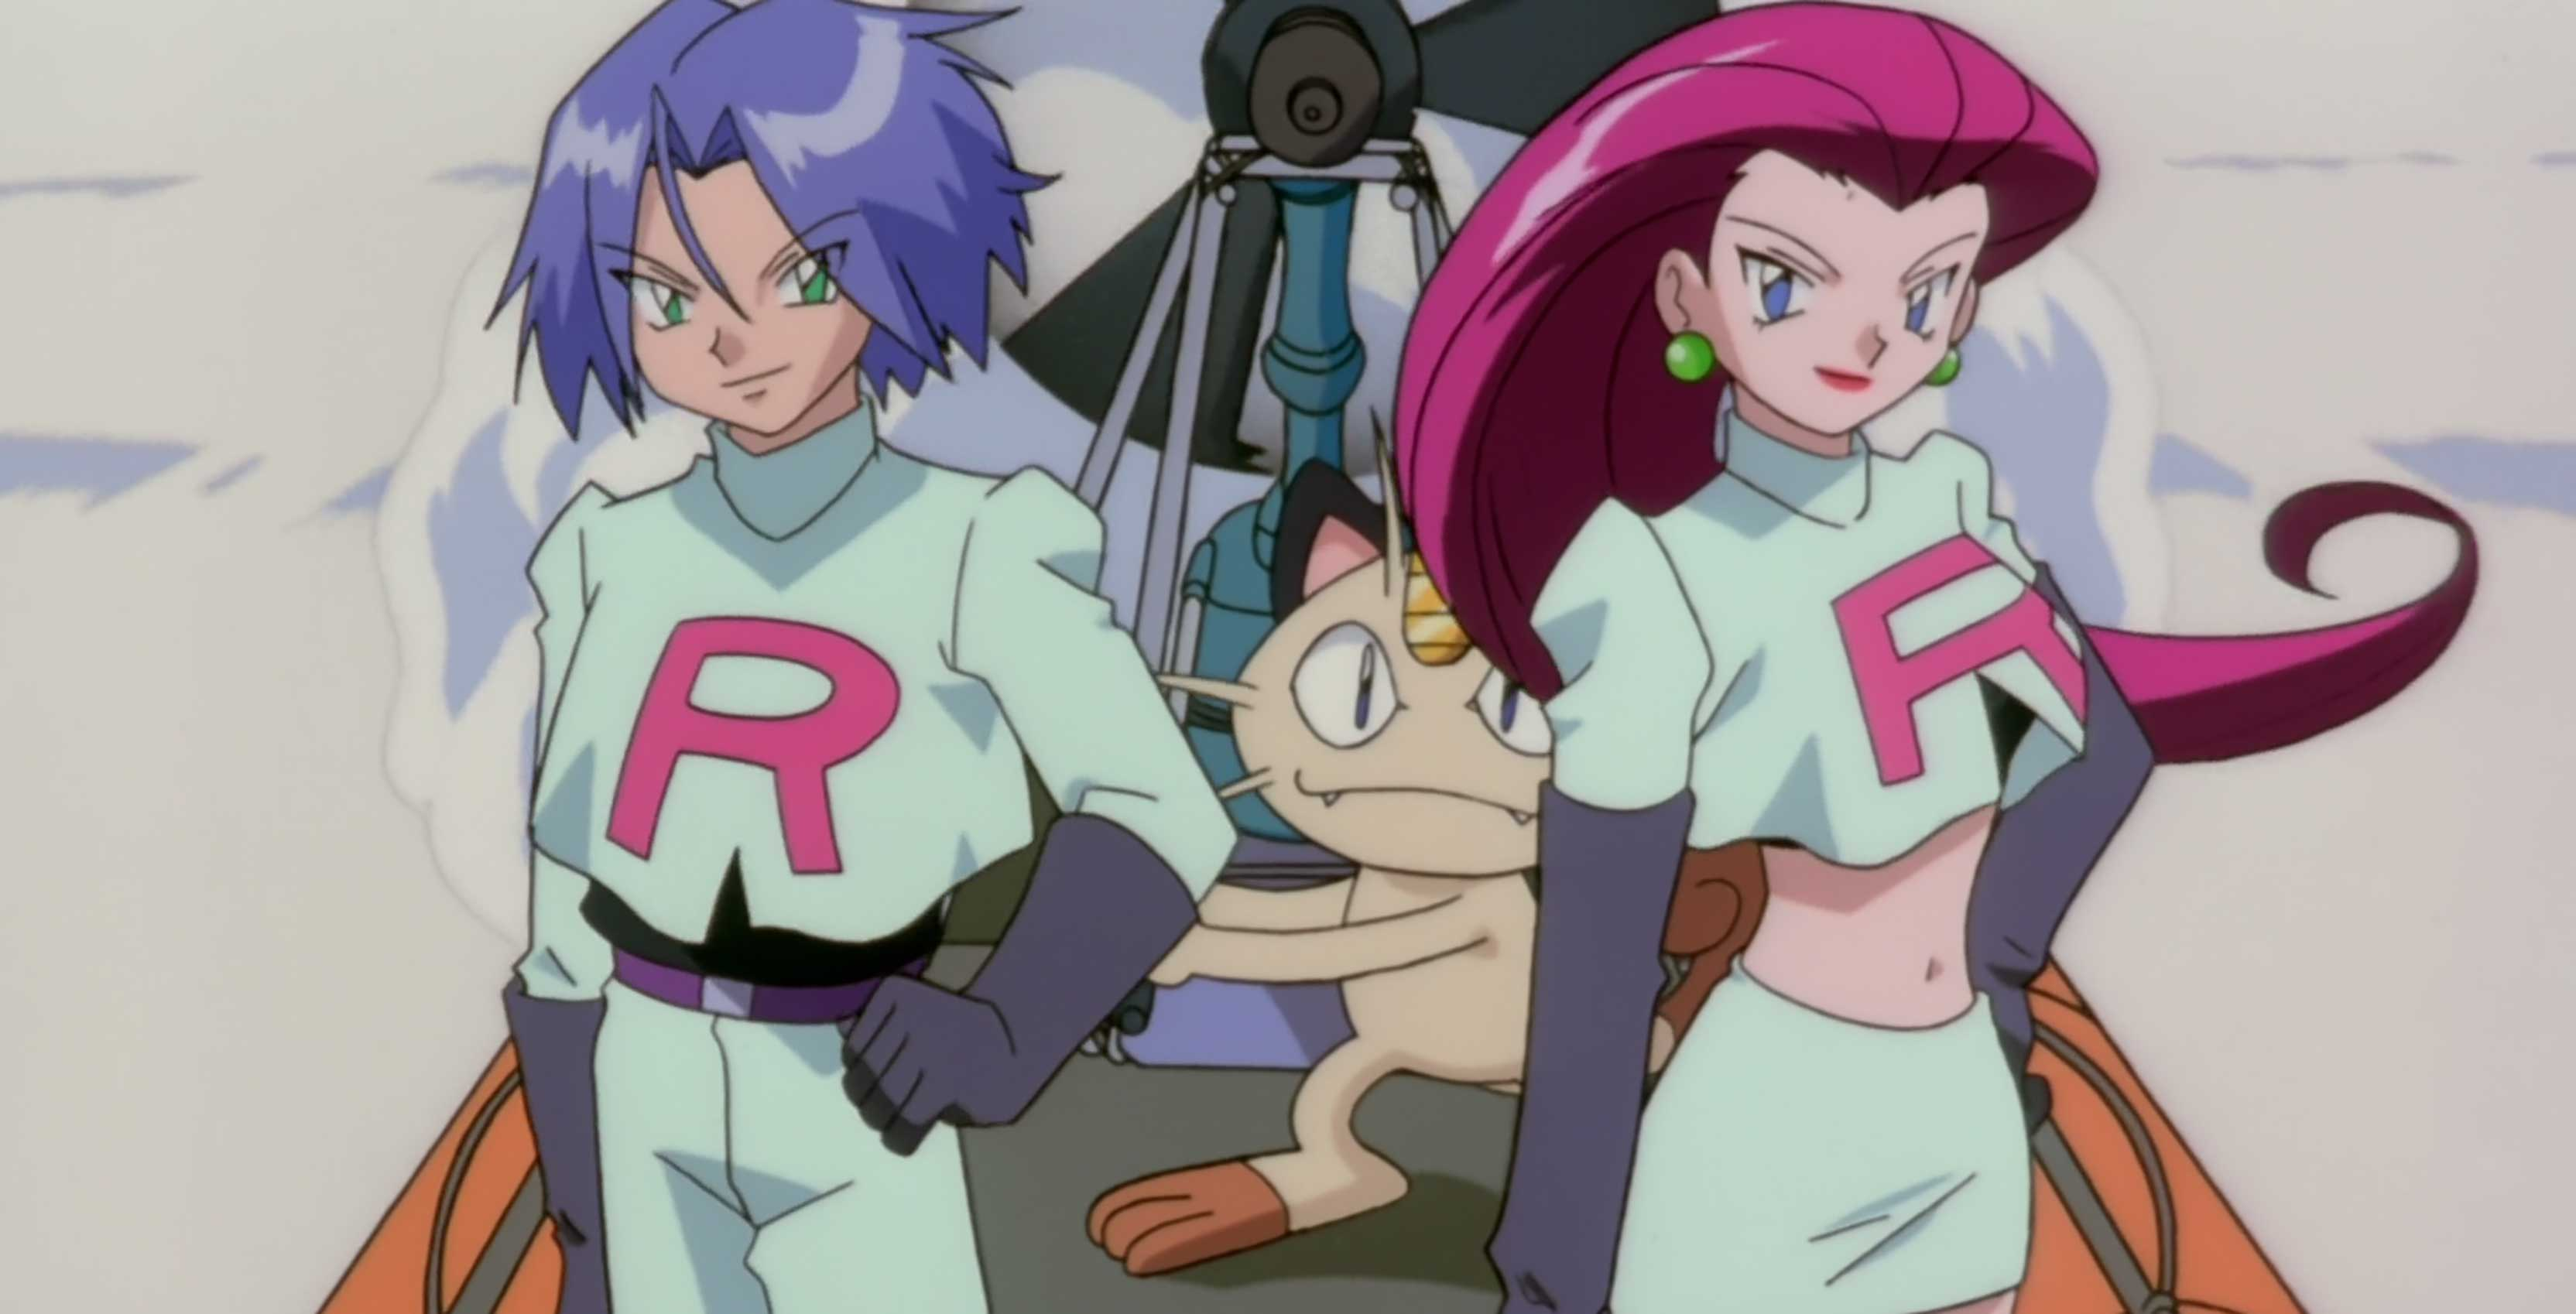 Pokémon Team Rocket Jessie and James